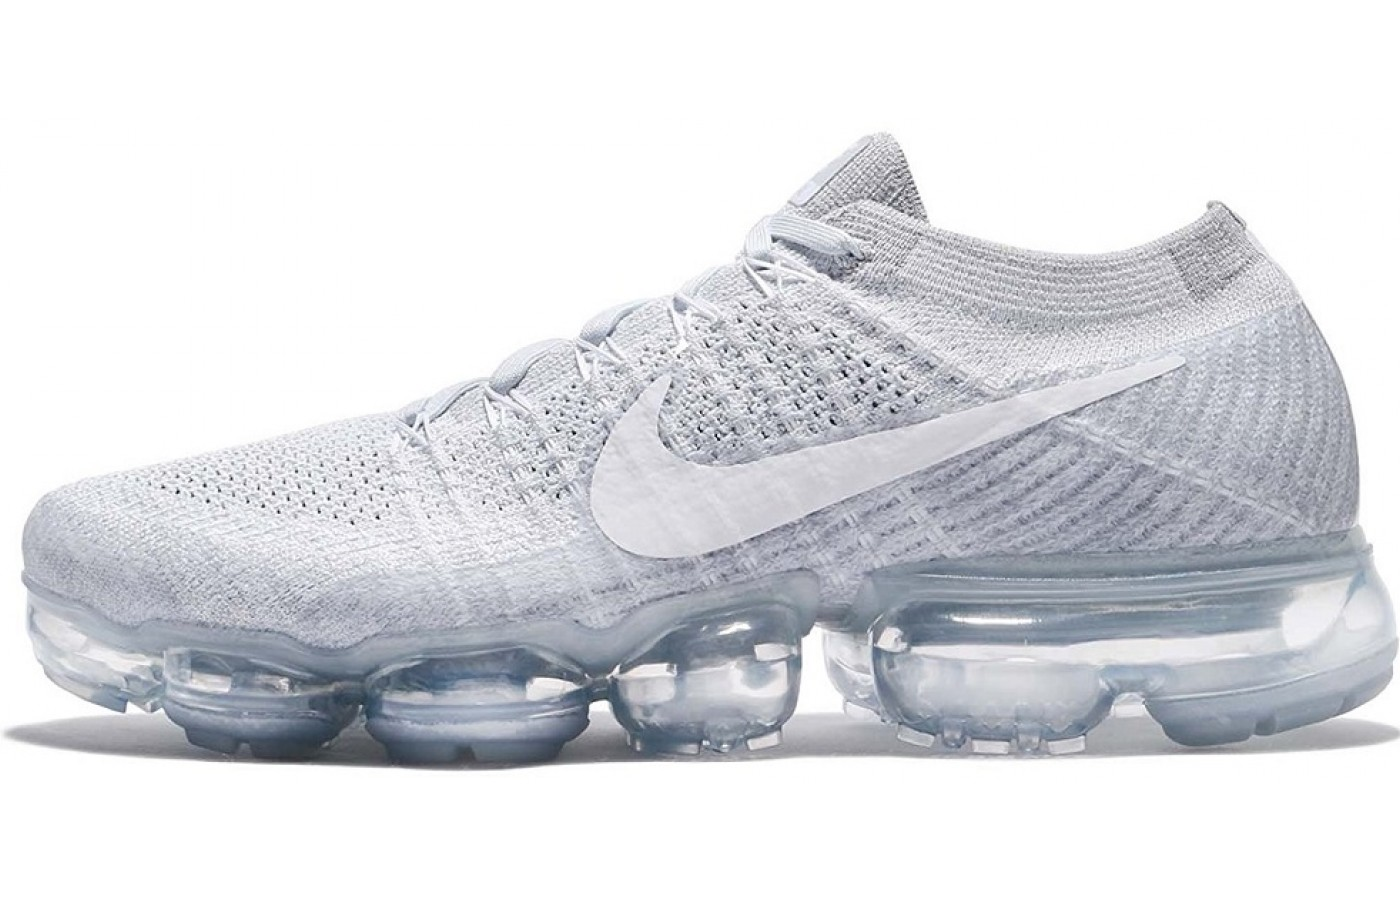 Side view of the Nike Air Vapormax running shoe